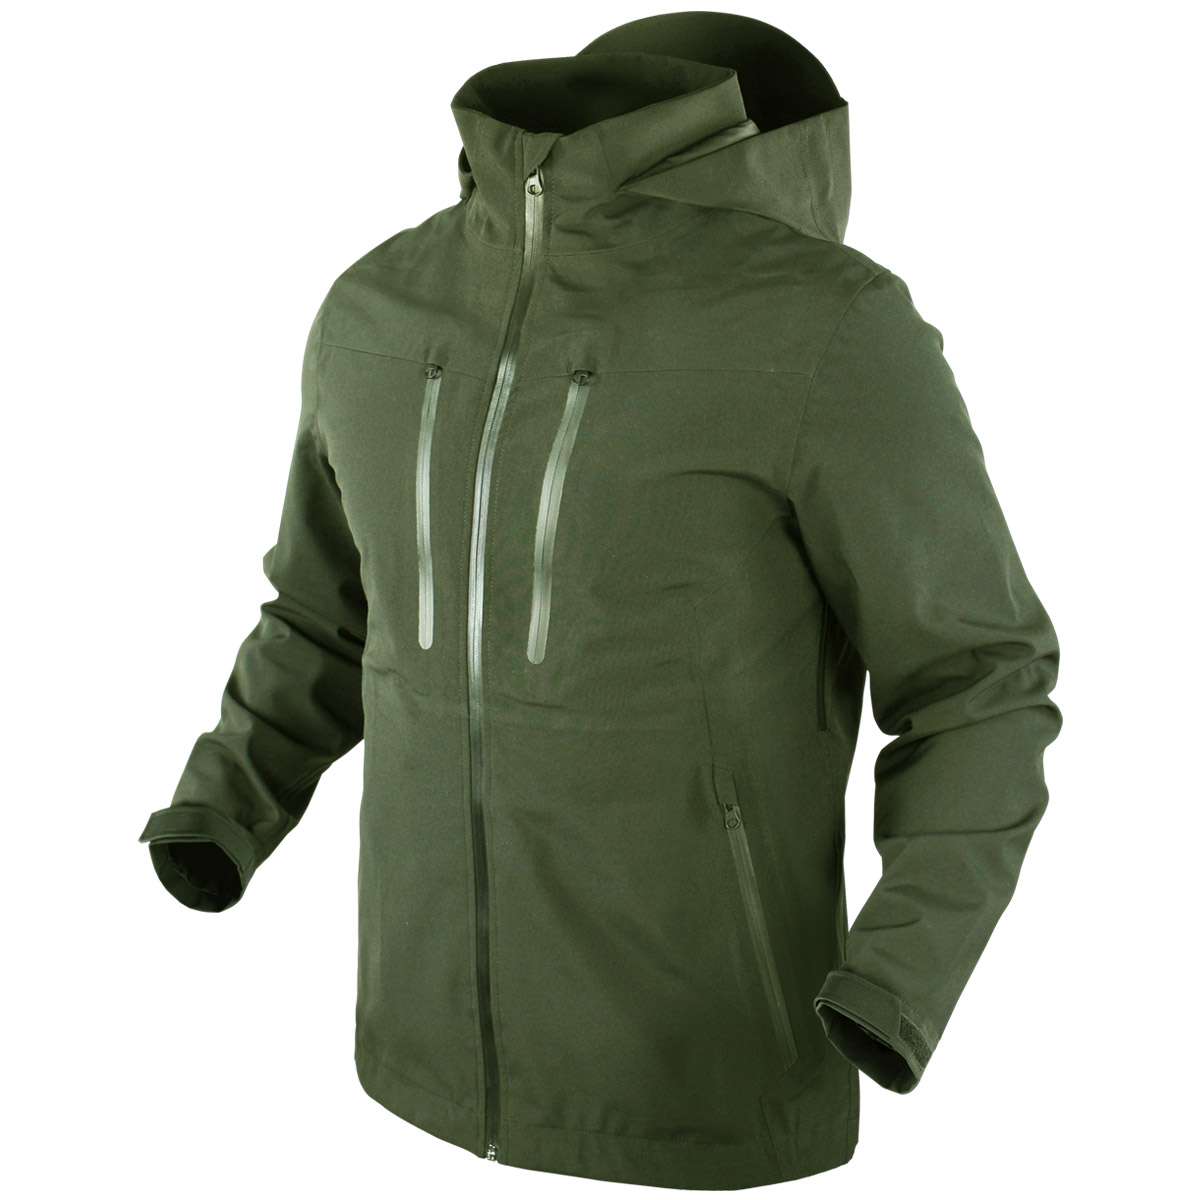 60d17039 Sentinel Condor Aegis Hardshell Hooded Jacket Military Mens Waterproof  Parka Olive Drab